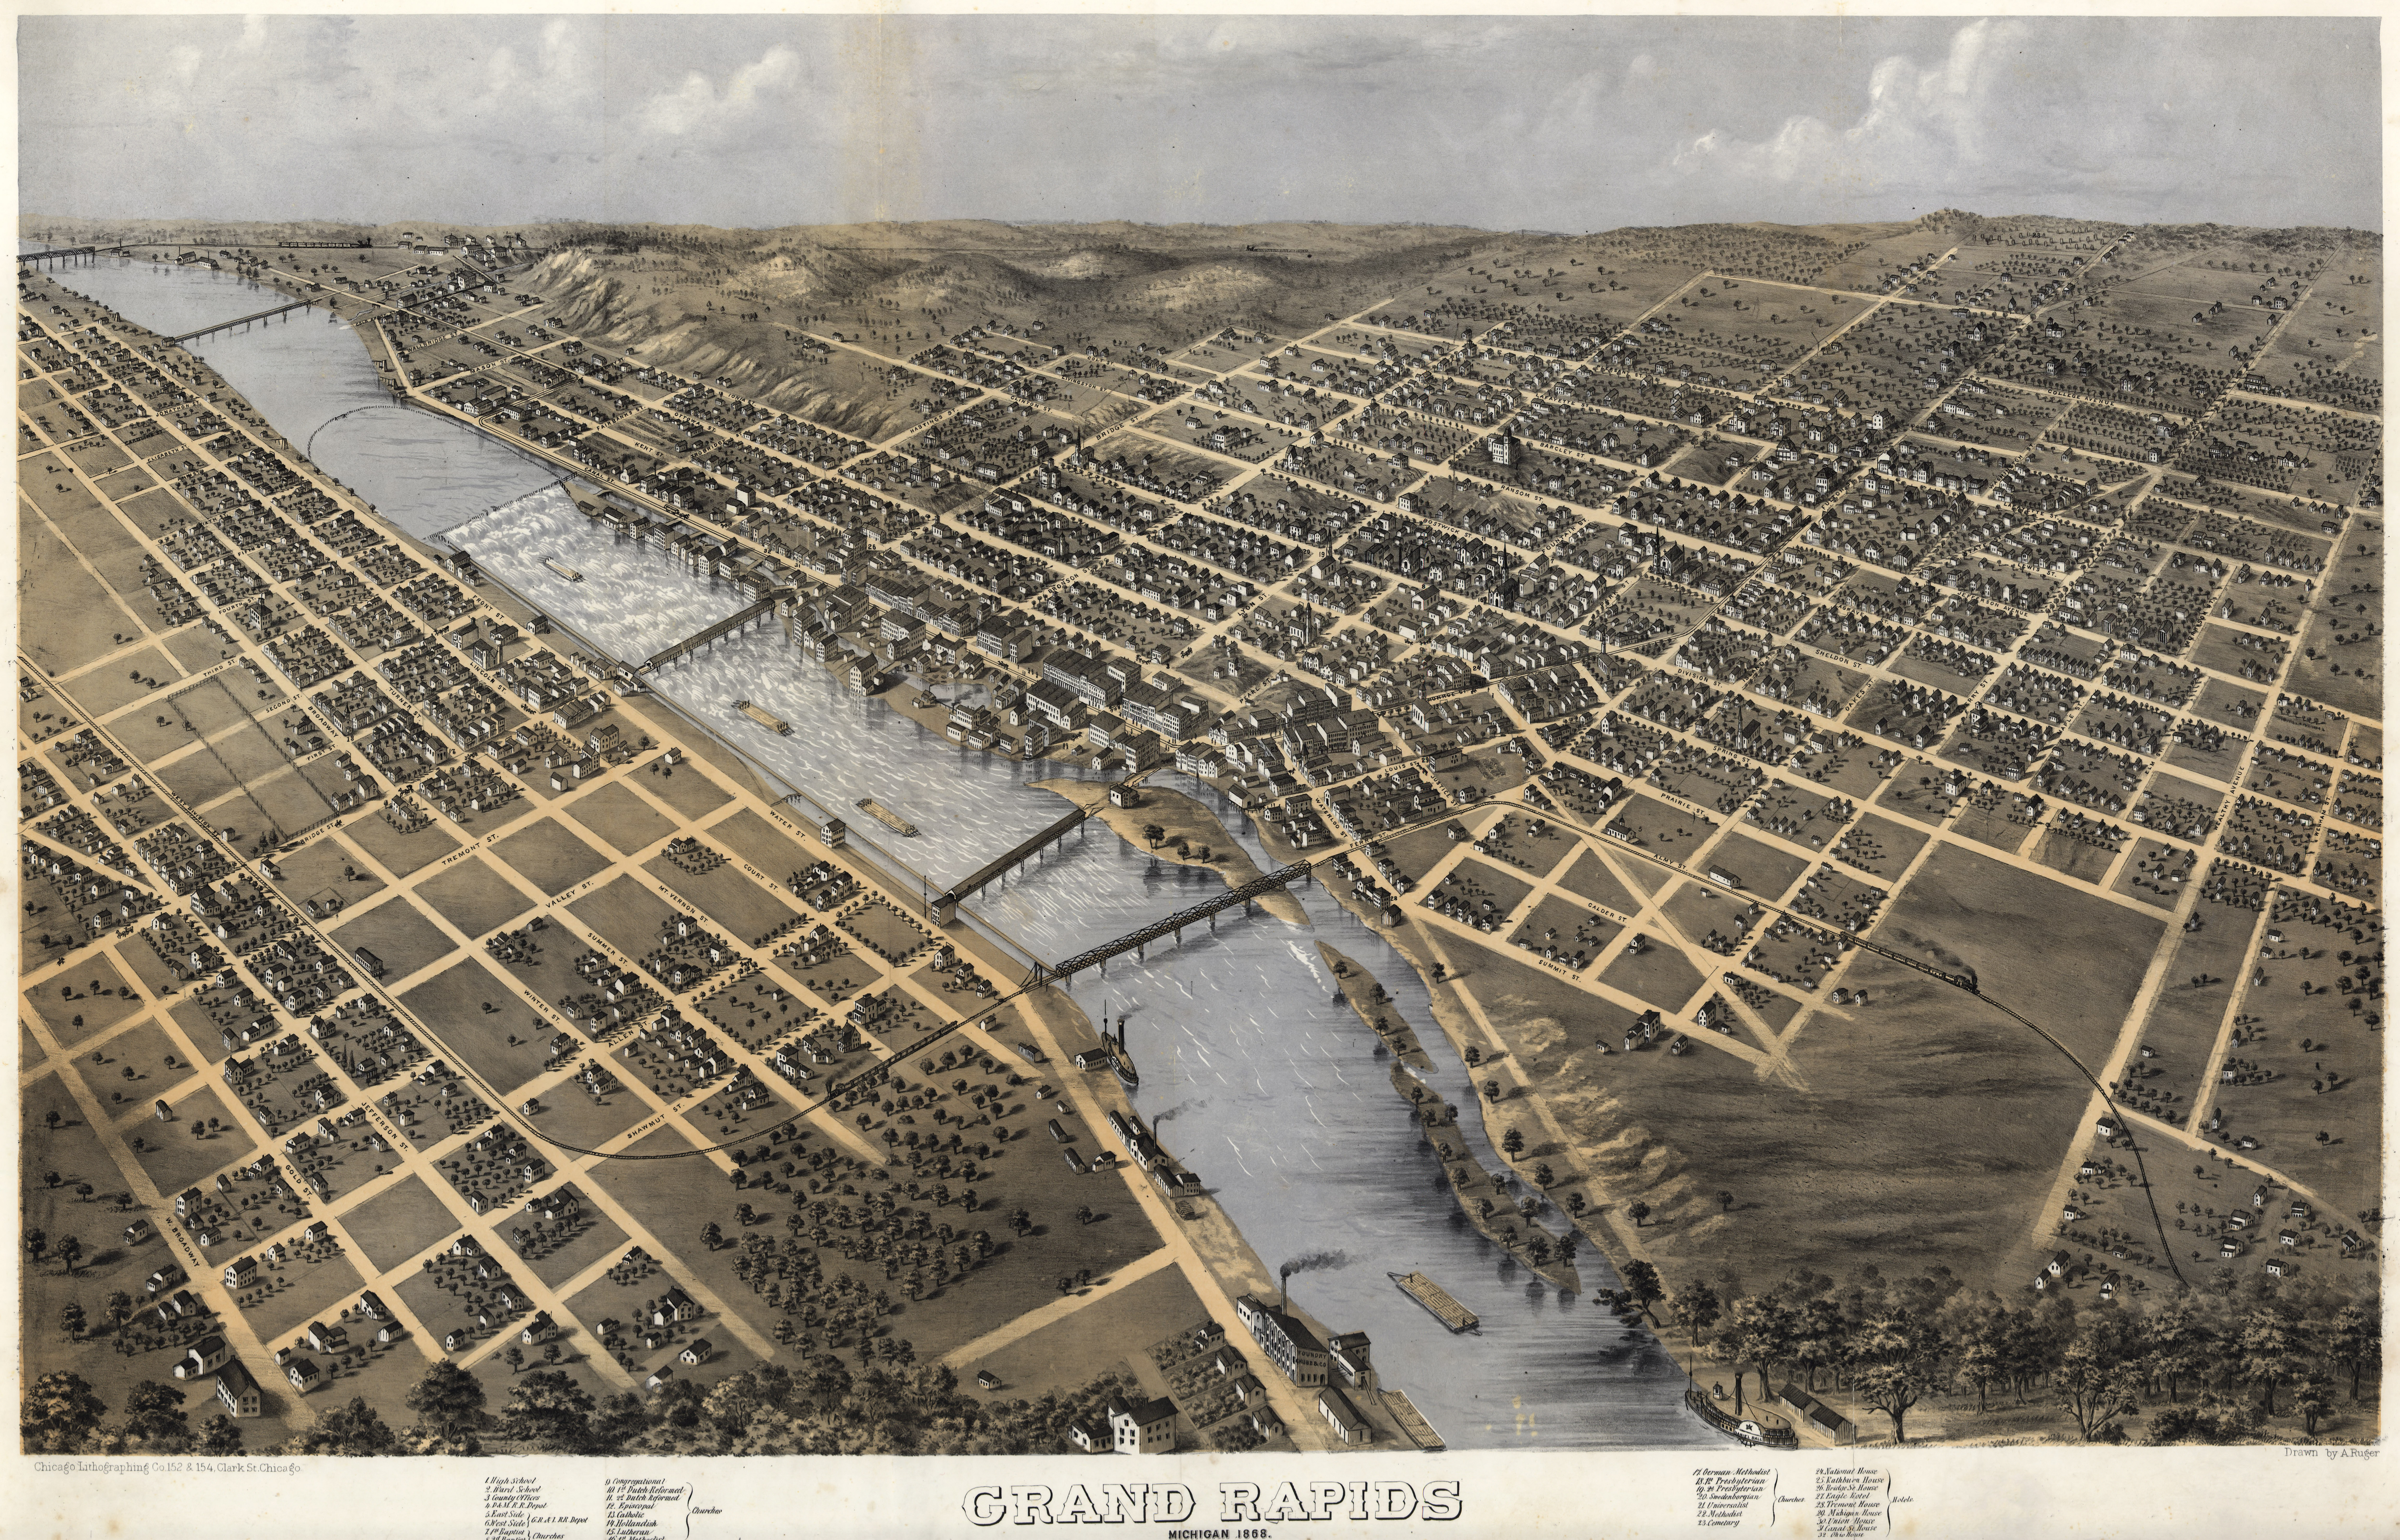 Rugers map of Grand Rapids 1868